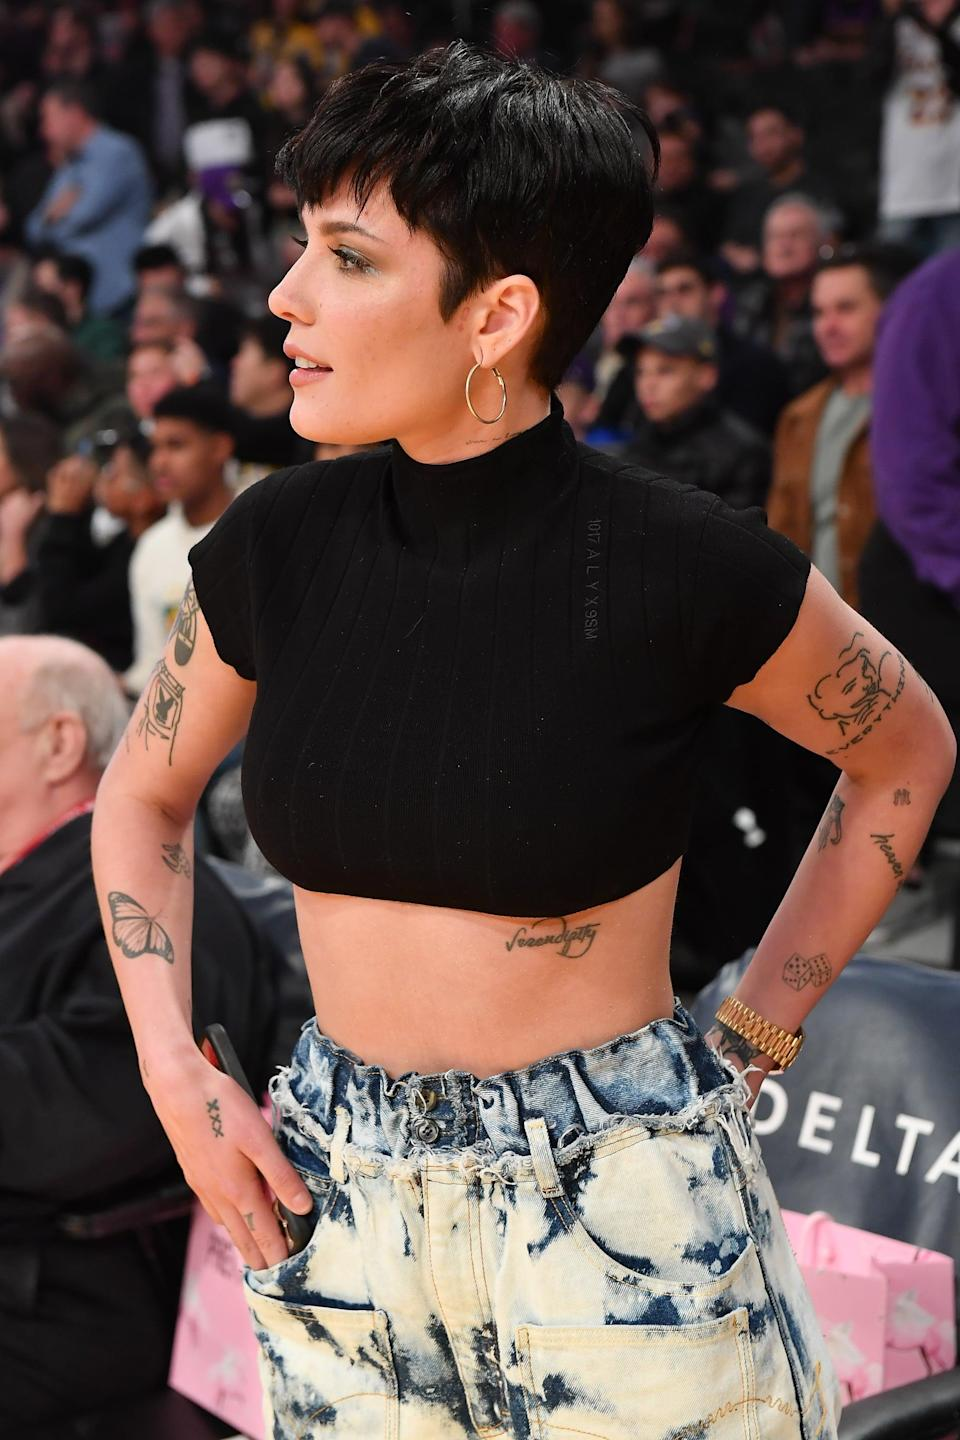 "<p>There's a large butterfly tattoo on Halsey's left forearm because, ""I just think they have a cool power,"" <a href=""https://www.marieclaire.com/celebrity/a22129283/halsey-august-2018-cover/"" class=""link rapid-noclick-resp"" rel=""nofollow noopener"" target=""_blank"" data-ylk=""slk:she told Marie Claire"">she told <strong>Marie Claire</strong></a>.</p>"